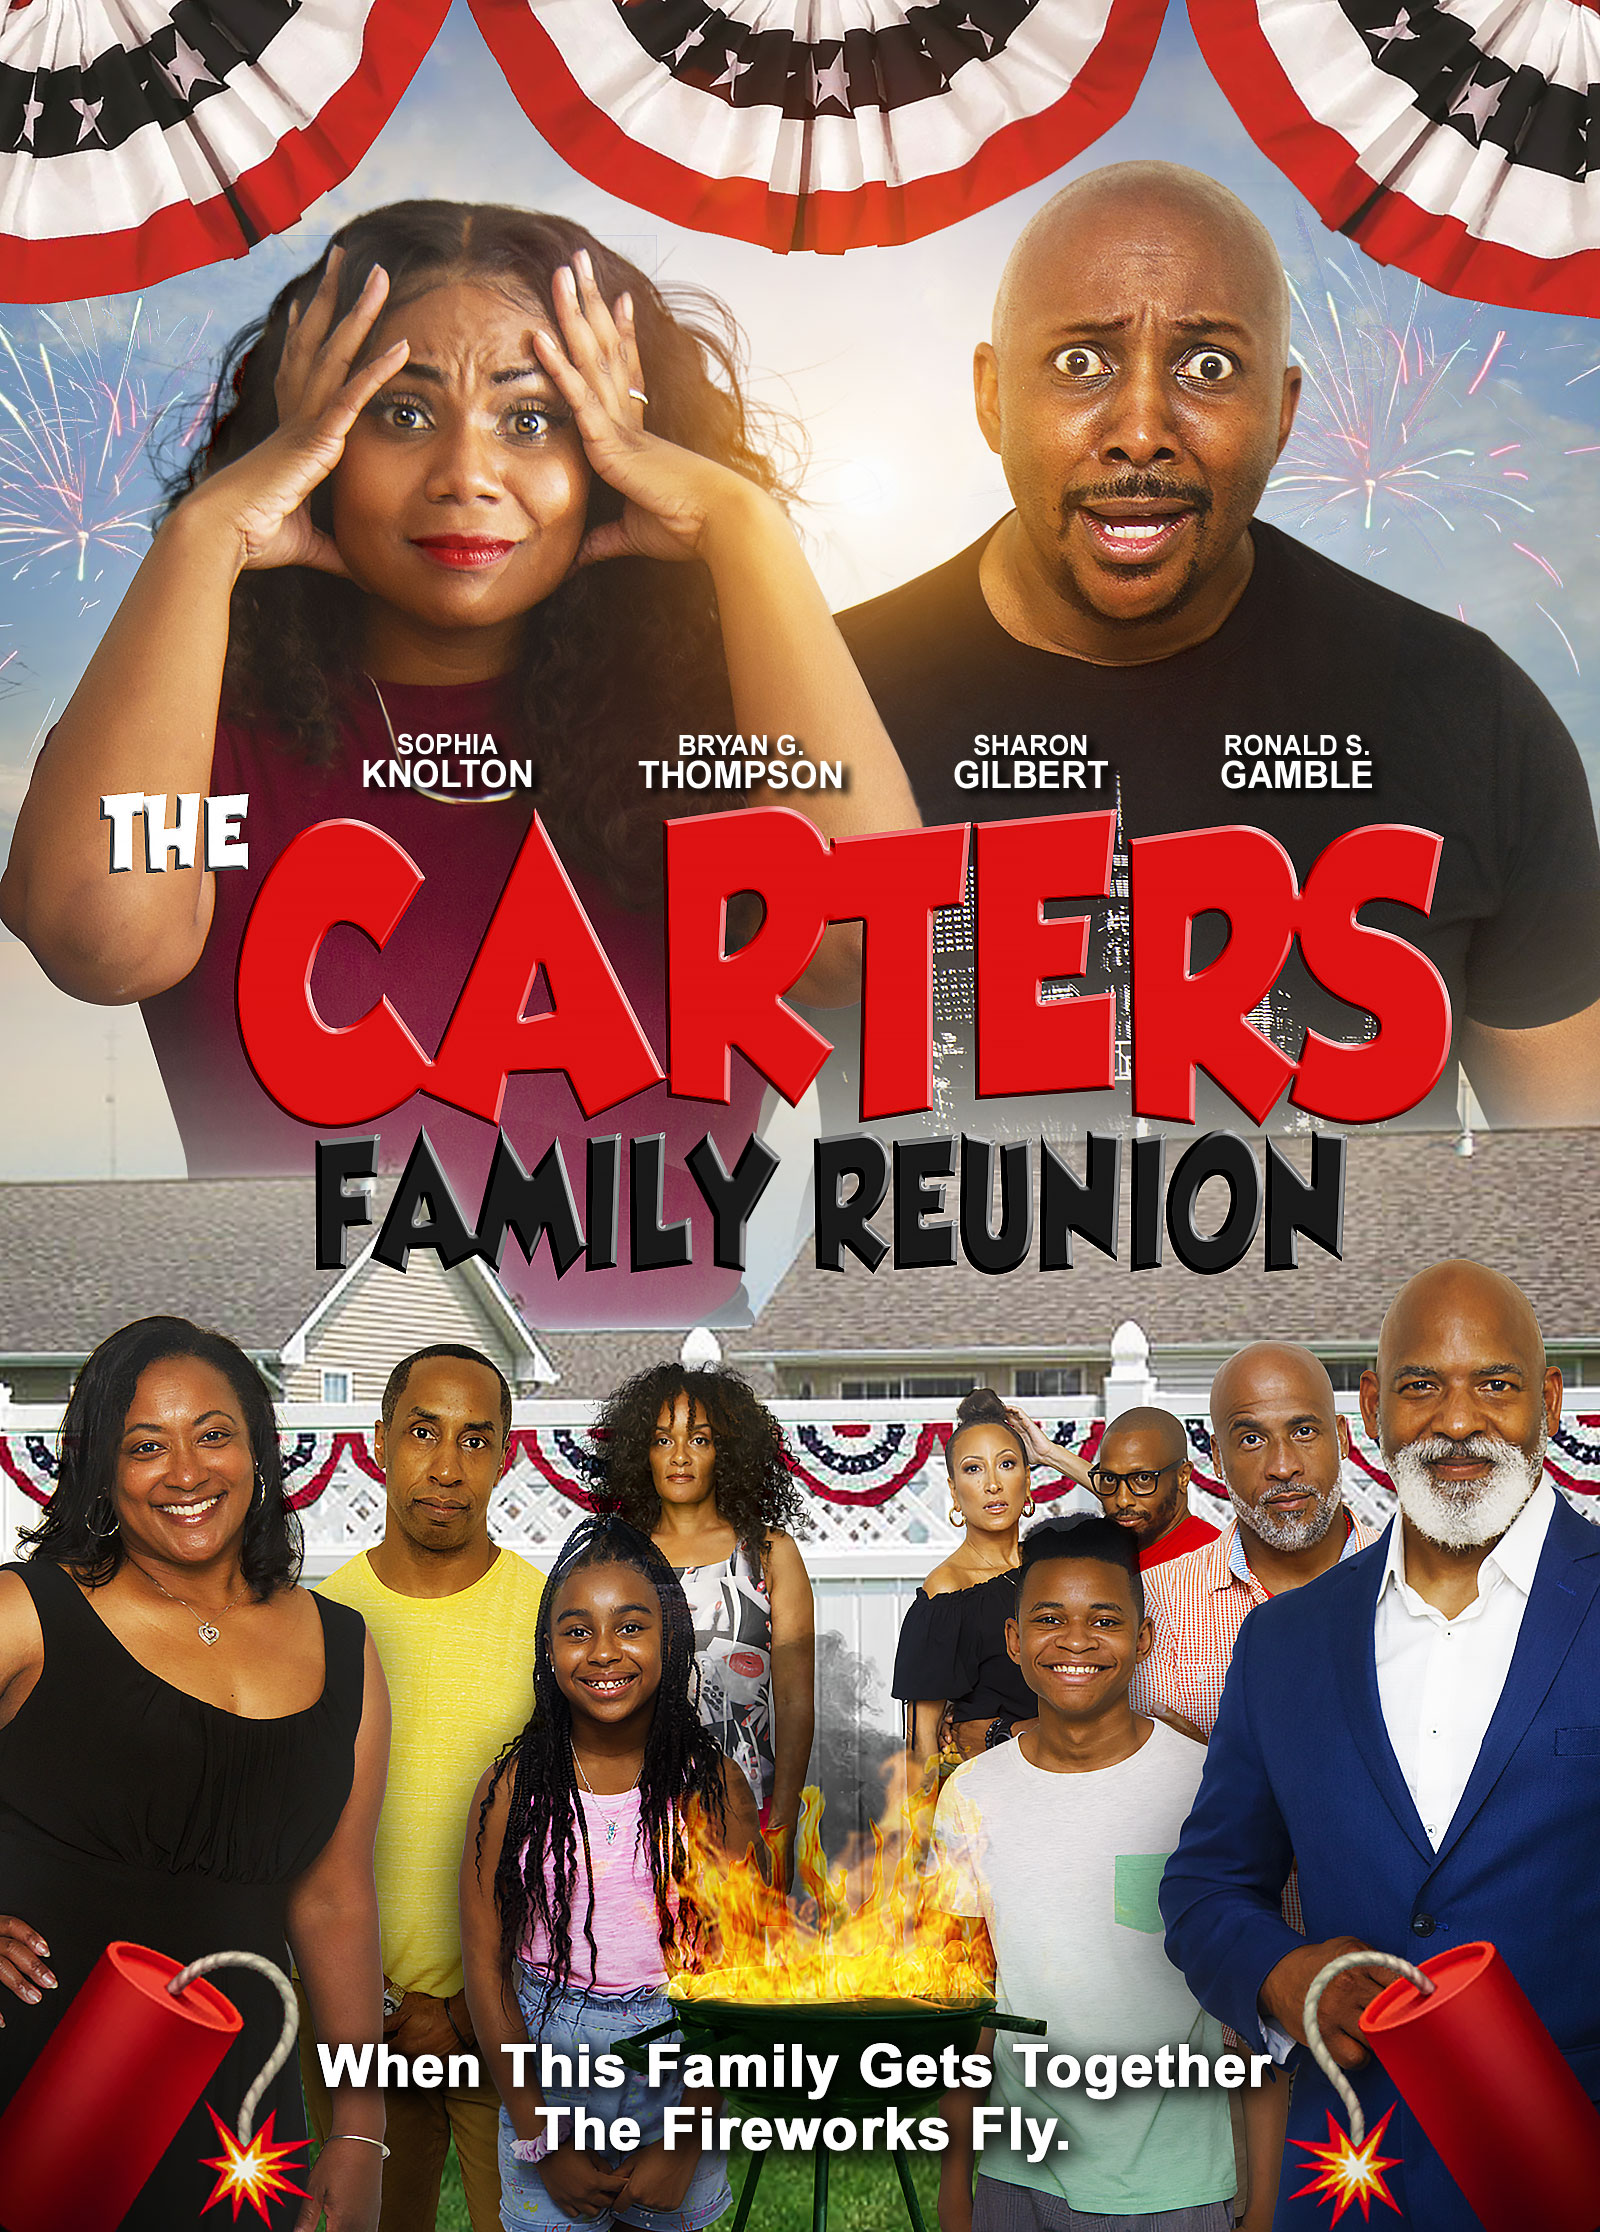 Carter Family Reunion 2021 - SEE21